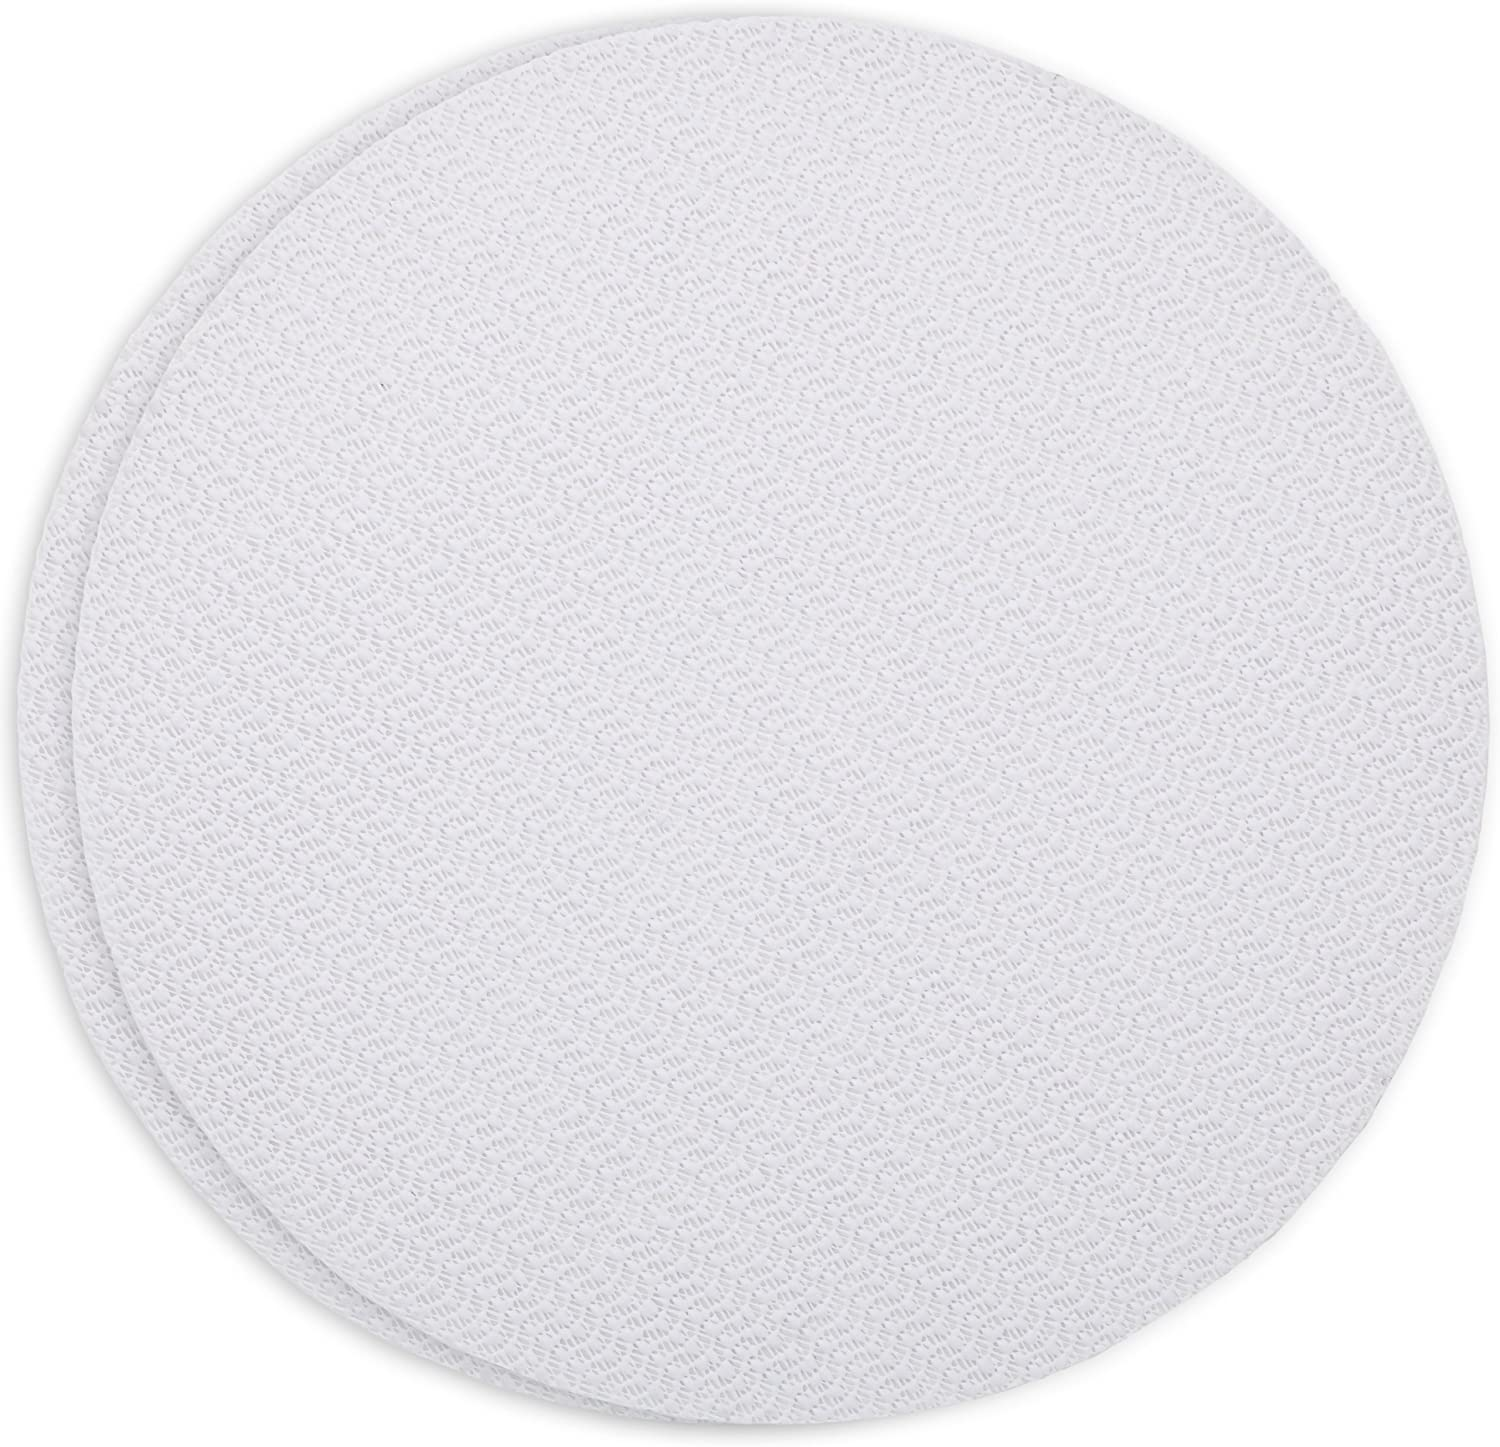 Ateco Set of 2 Non-Slip Pads, Reusable, Food Safe Plastic, 12-Inch Diameter, White